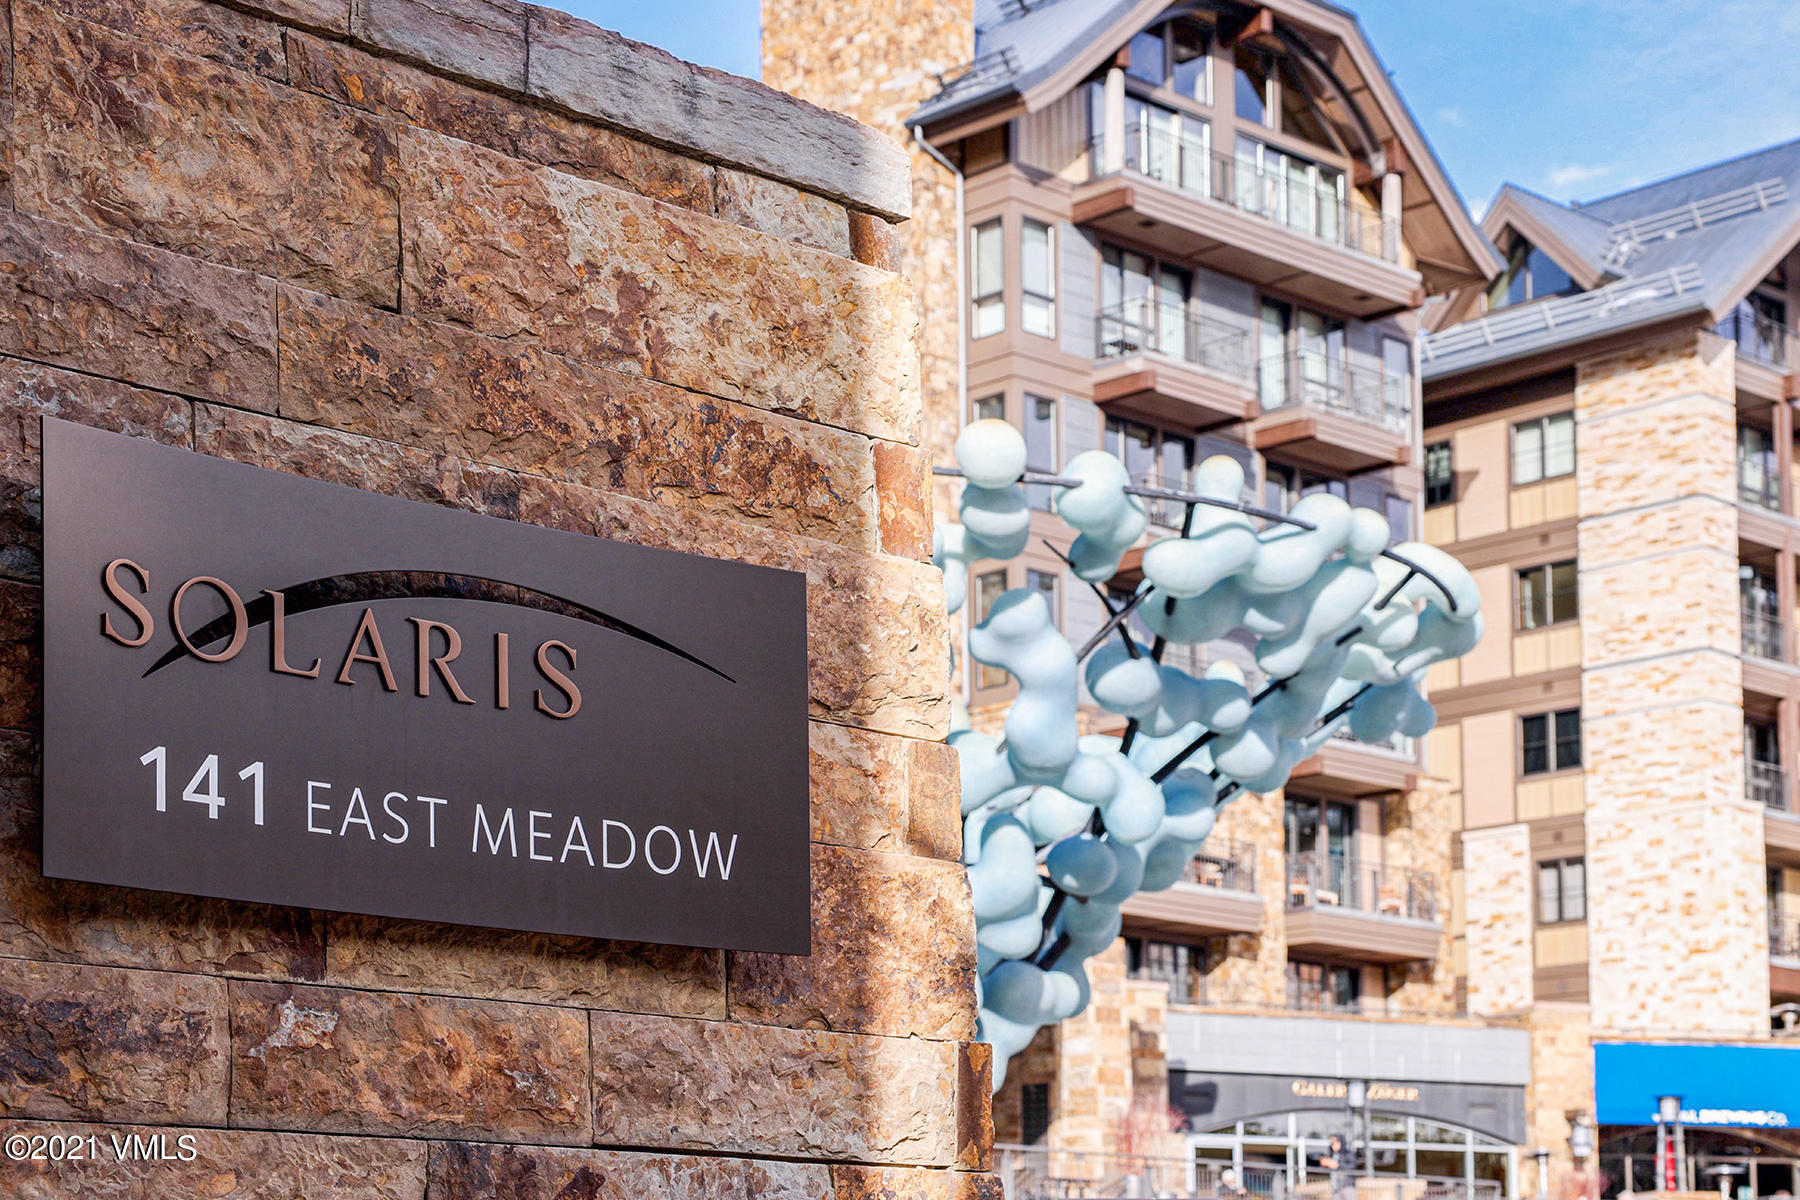 Terrific opportunity for two Bedrooms, plus Den, in the center of Vail Village.  In-house restaurant and bar, Matsuhisa, offering world-class dining.  Indoor swimming pool and fitness center.  Underground heated garage and valet parking.  Ski valet and year-round storage makes enjoying the mountain effortless.